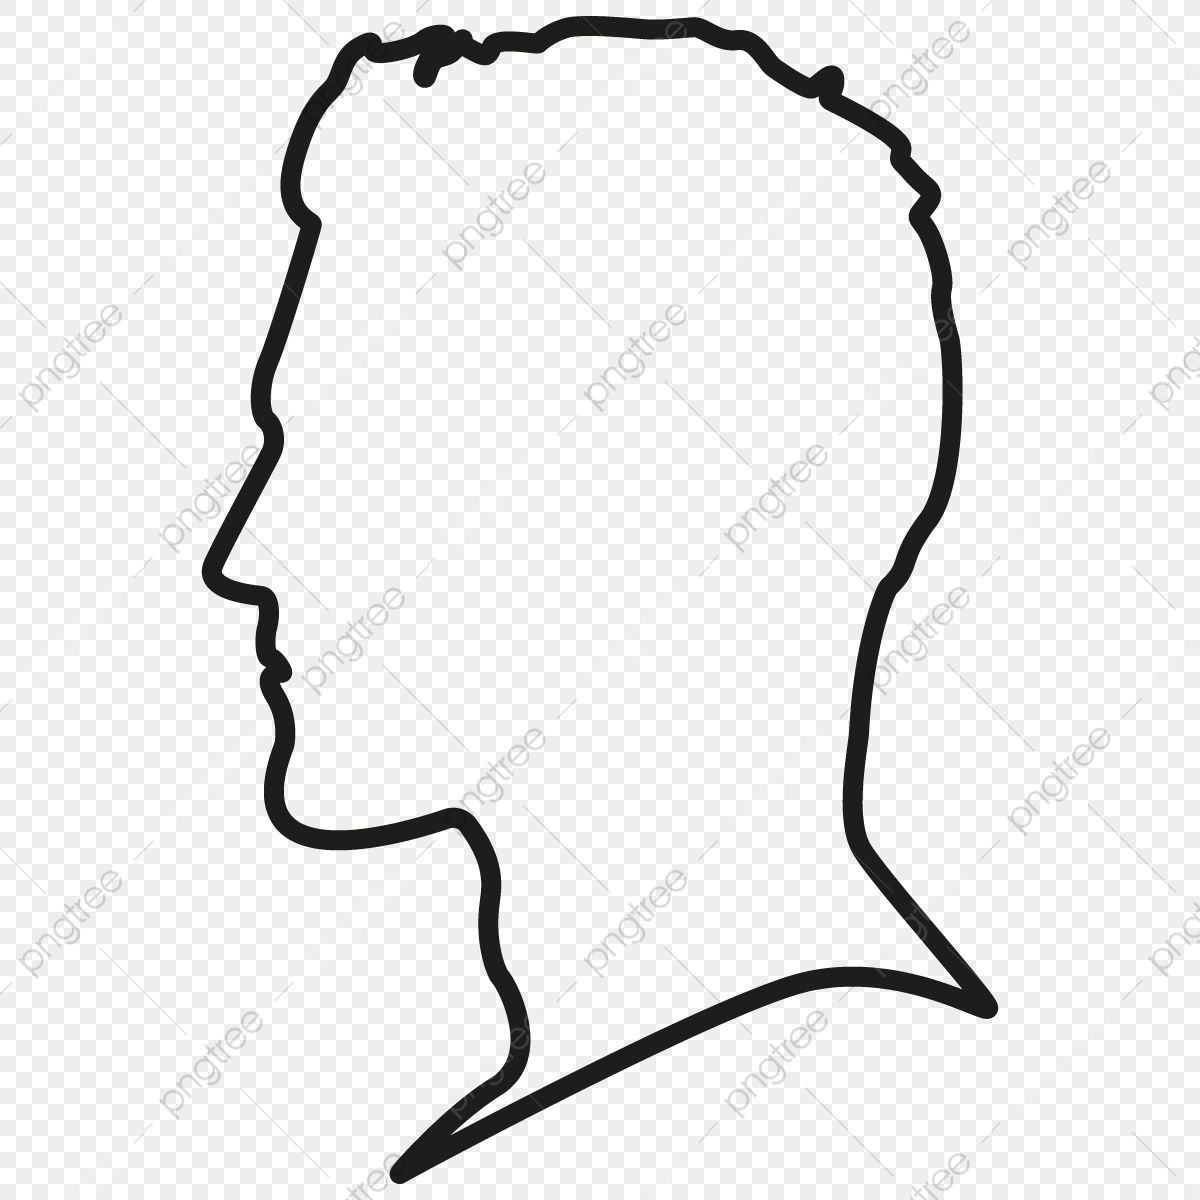 Head Outline Png - Head Silhouette Outline Free, Person Head, Male Silhouette Head ...